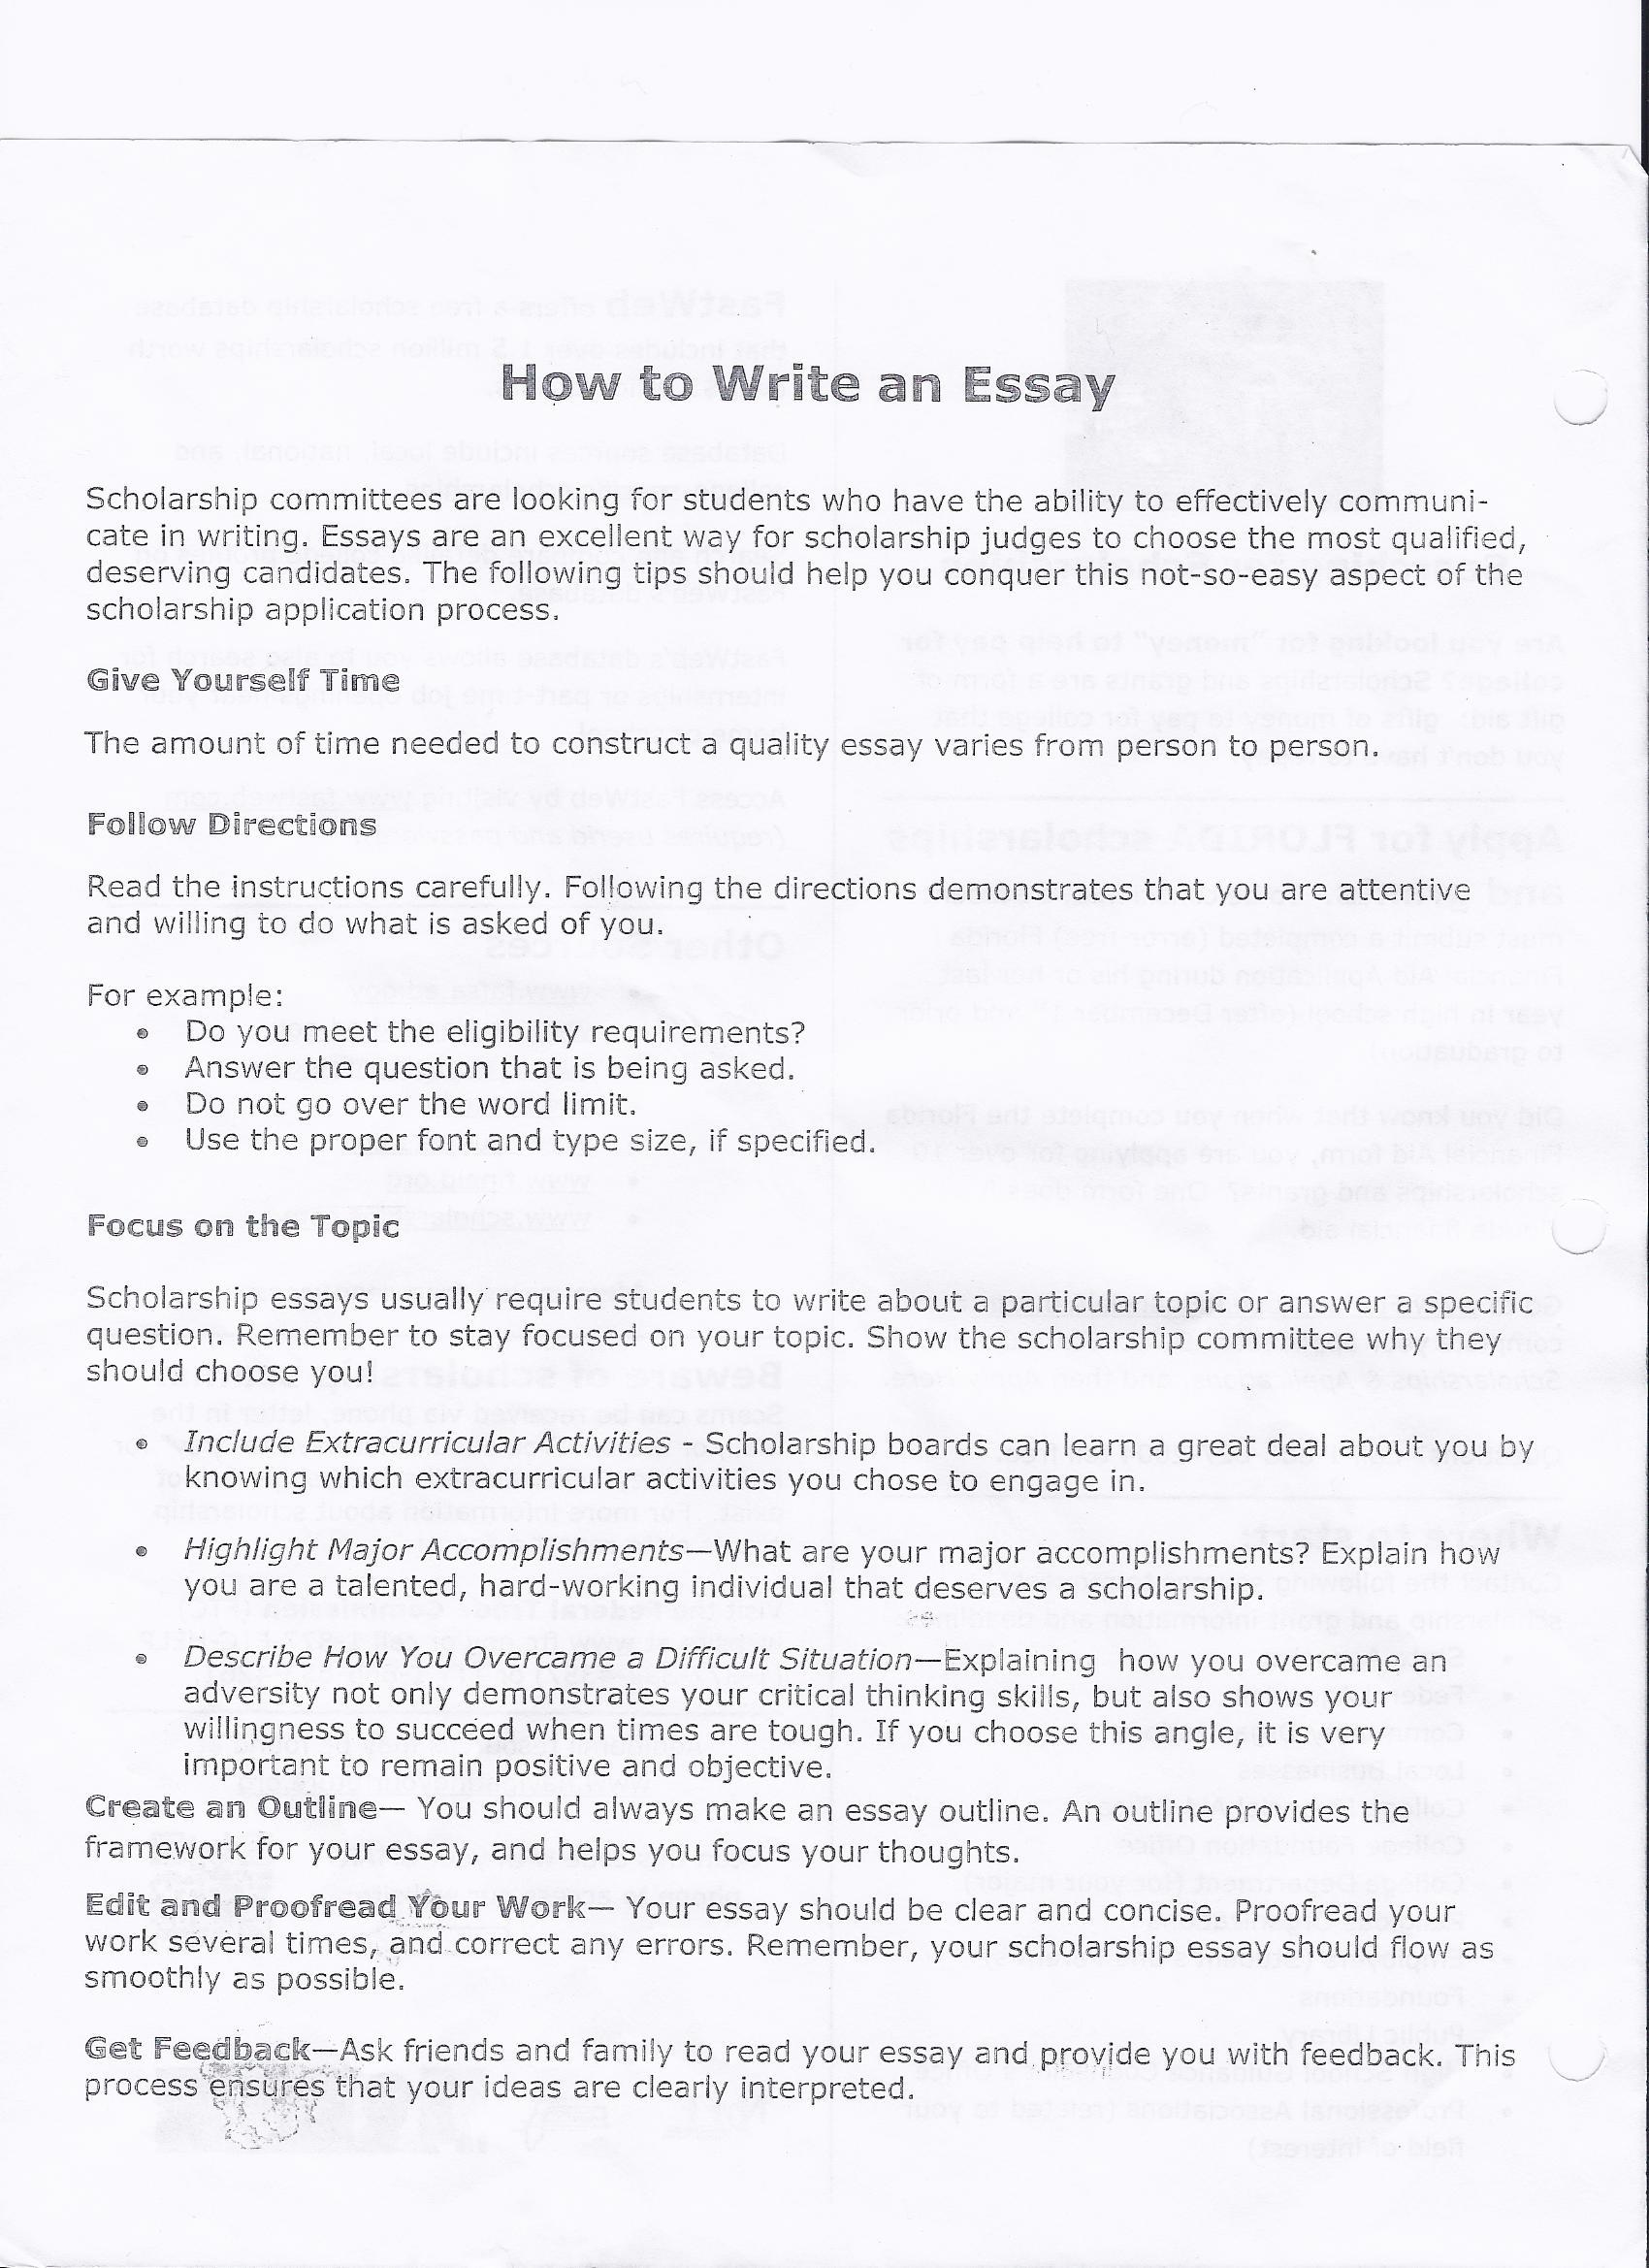 Fsot Practice Essay Prompts For Sat